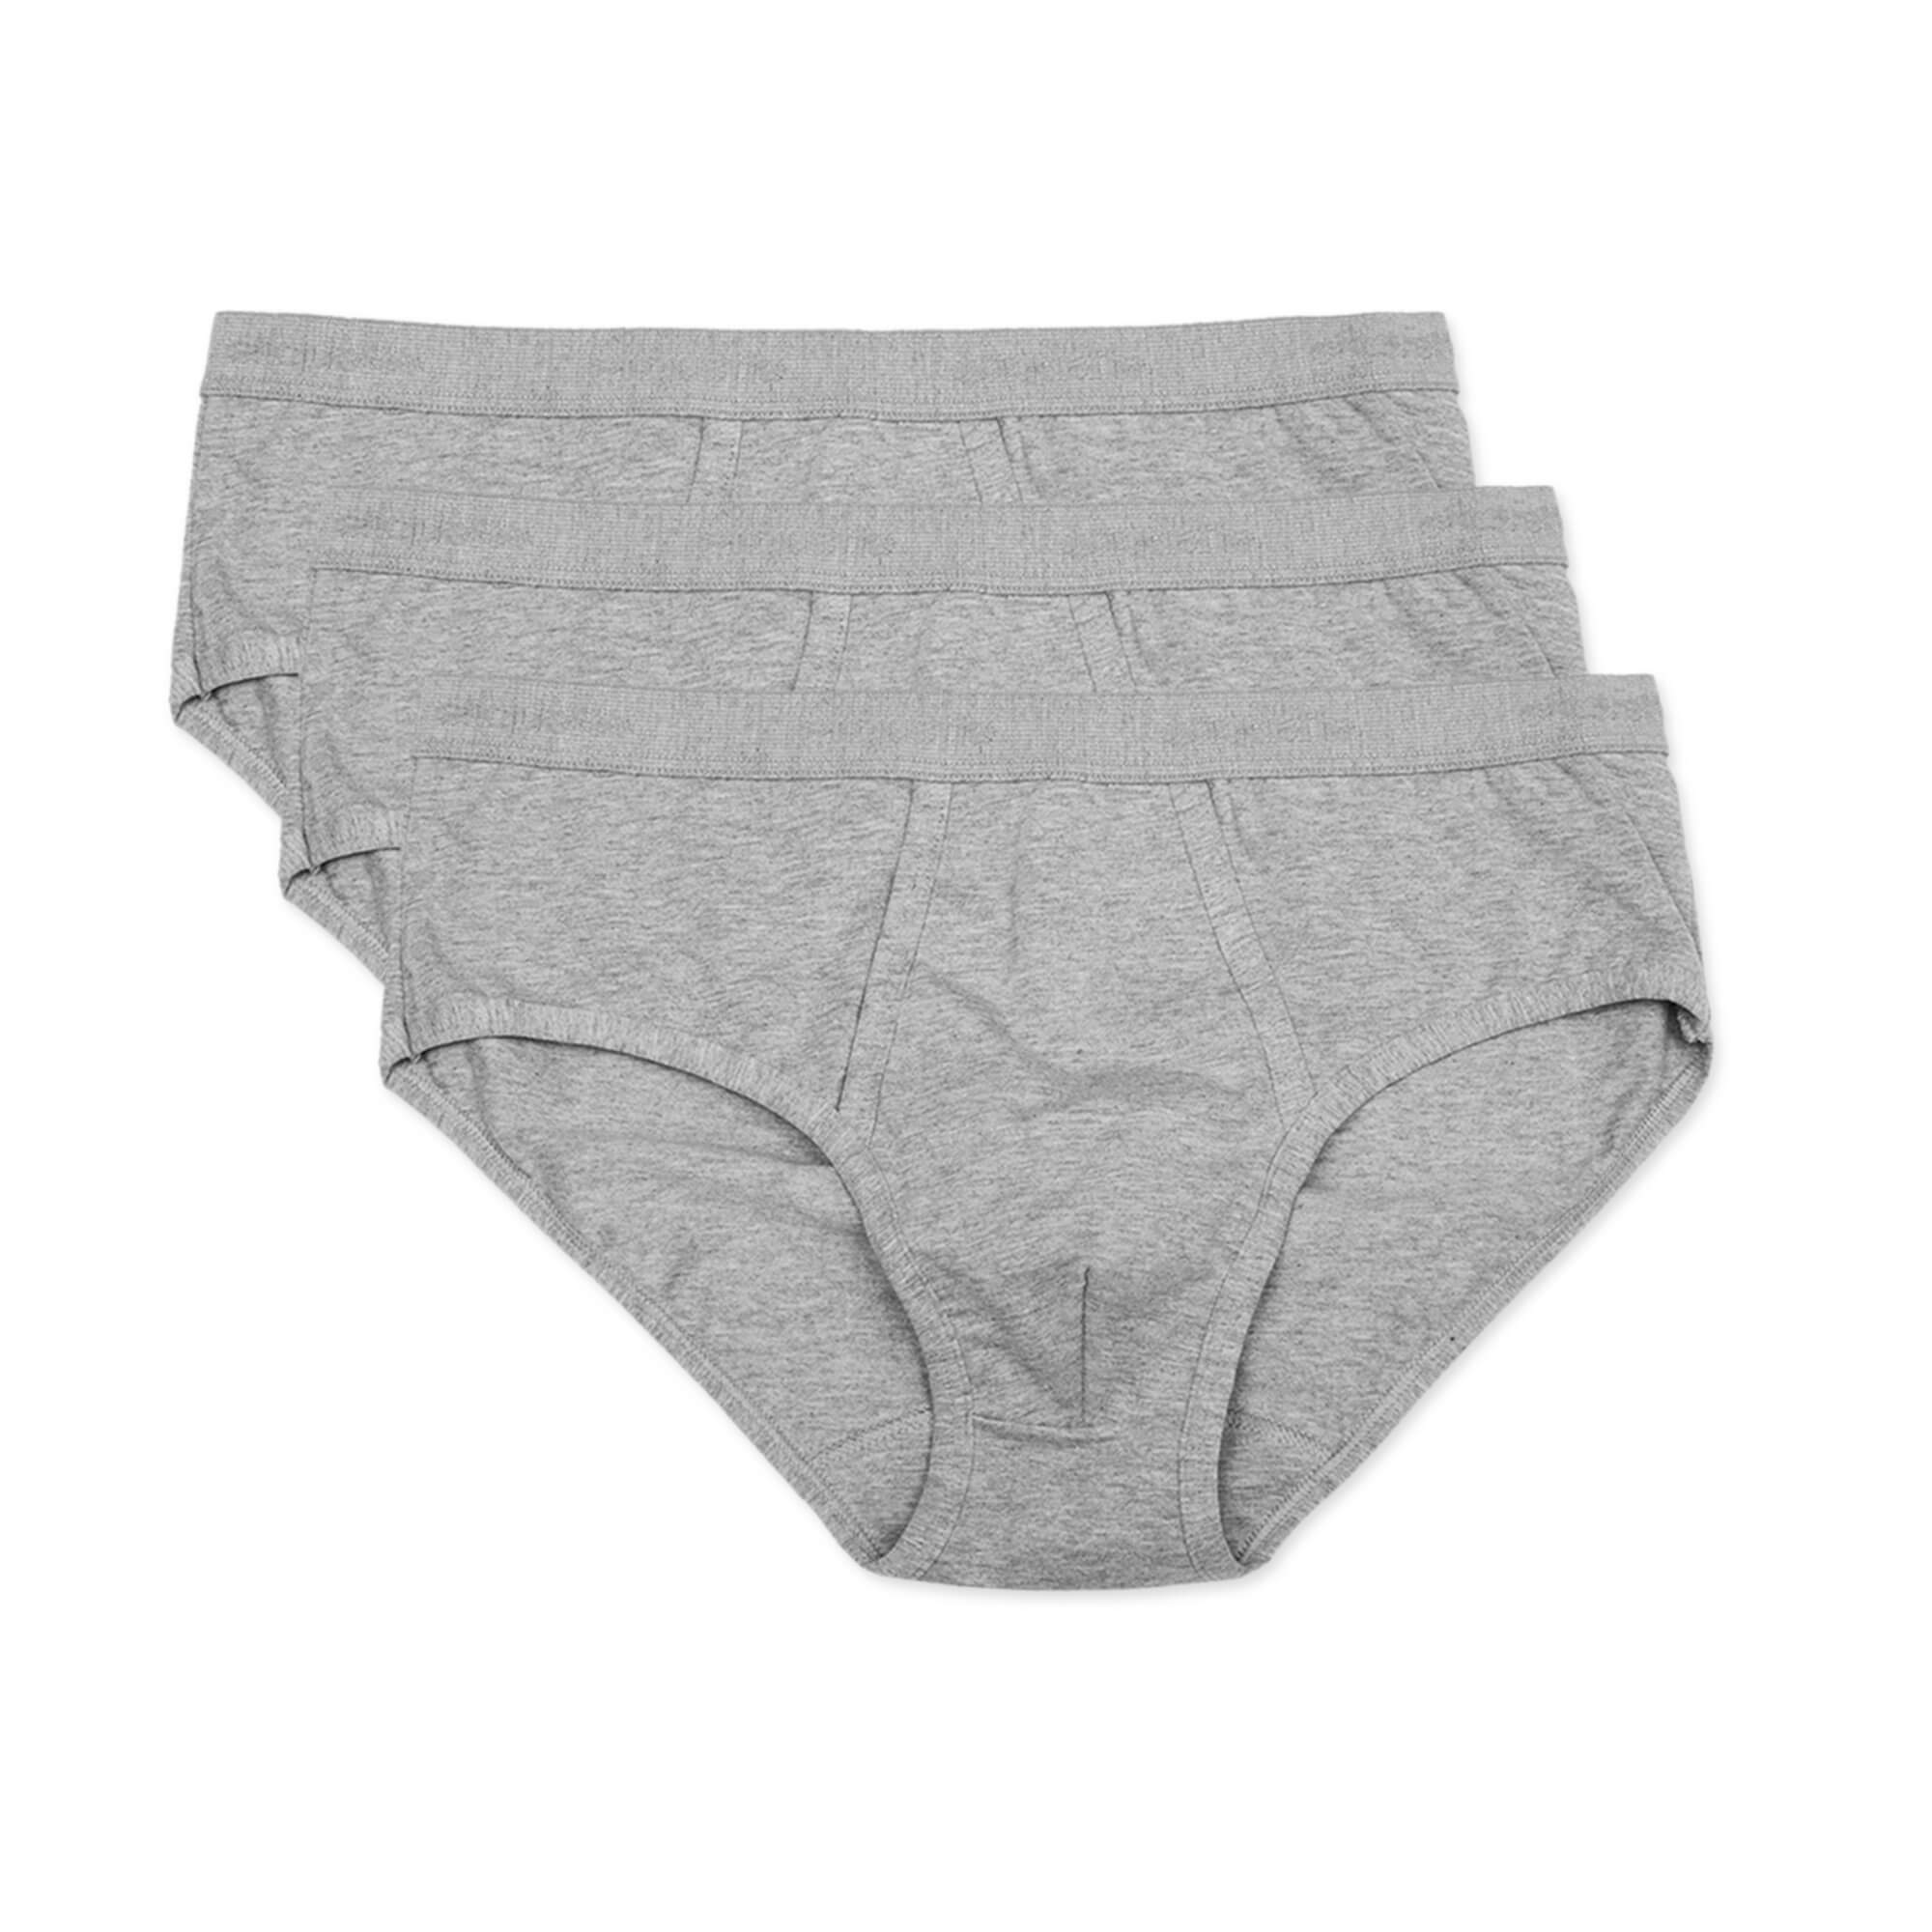 Mens Underwear - Men's Astor Briefs 3 Pack - Grey⎪Etiquette Clothiers